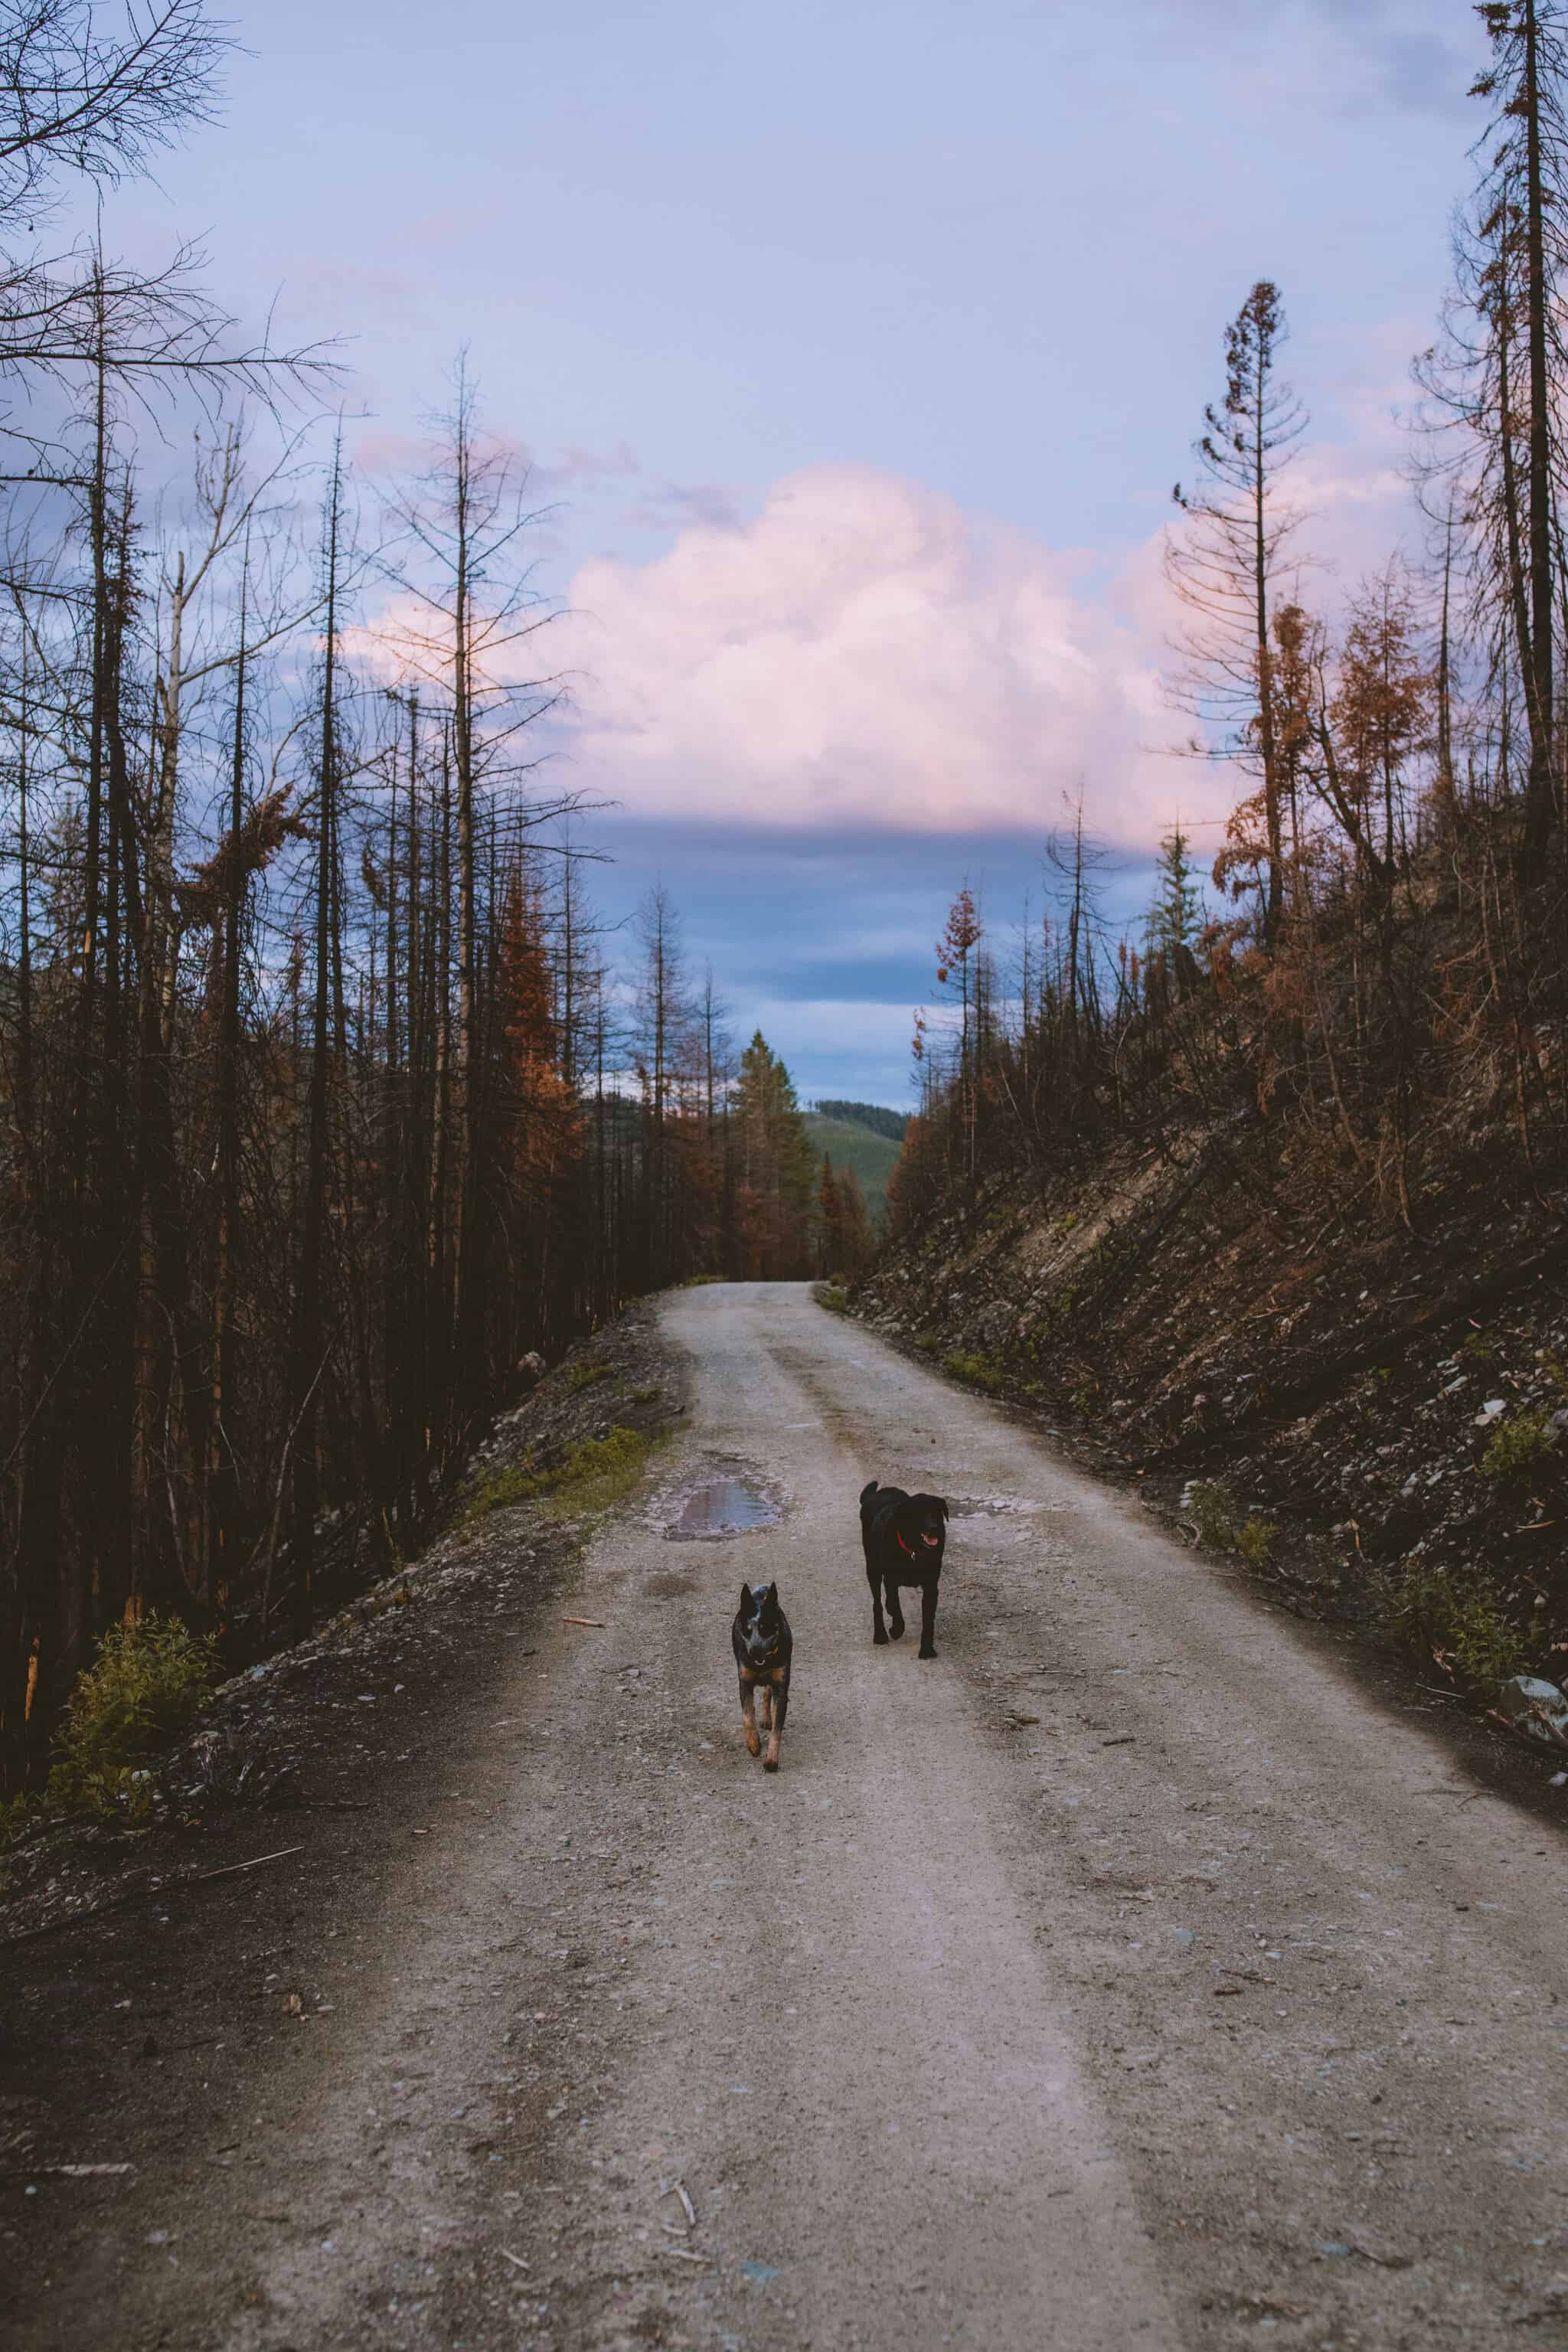 dogs on a dirt backcountry camping road